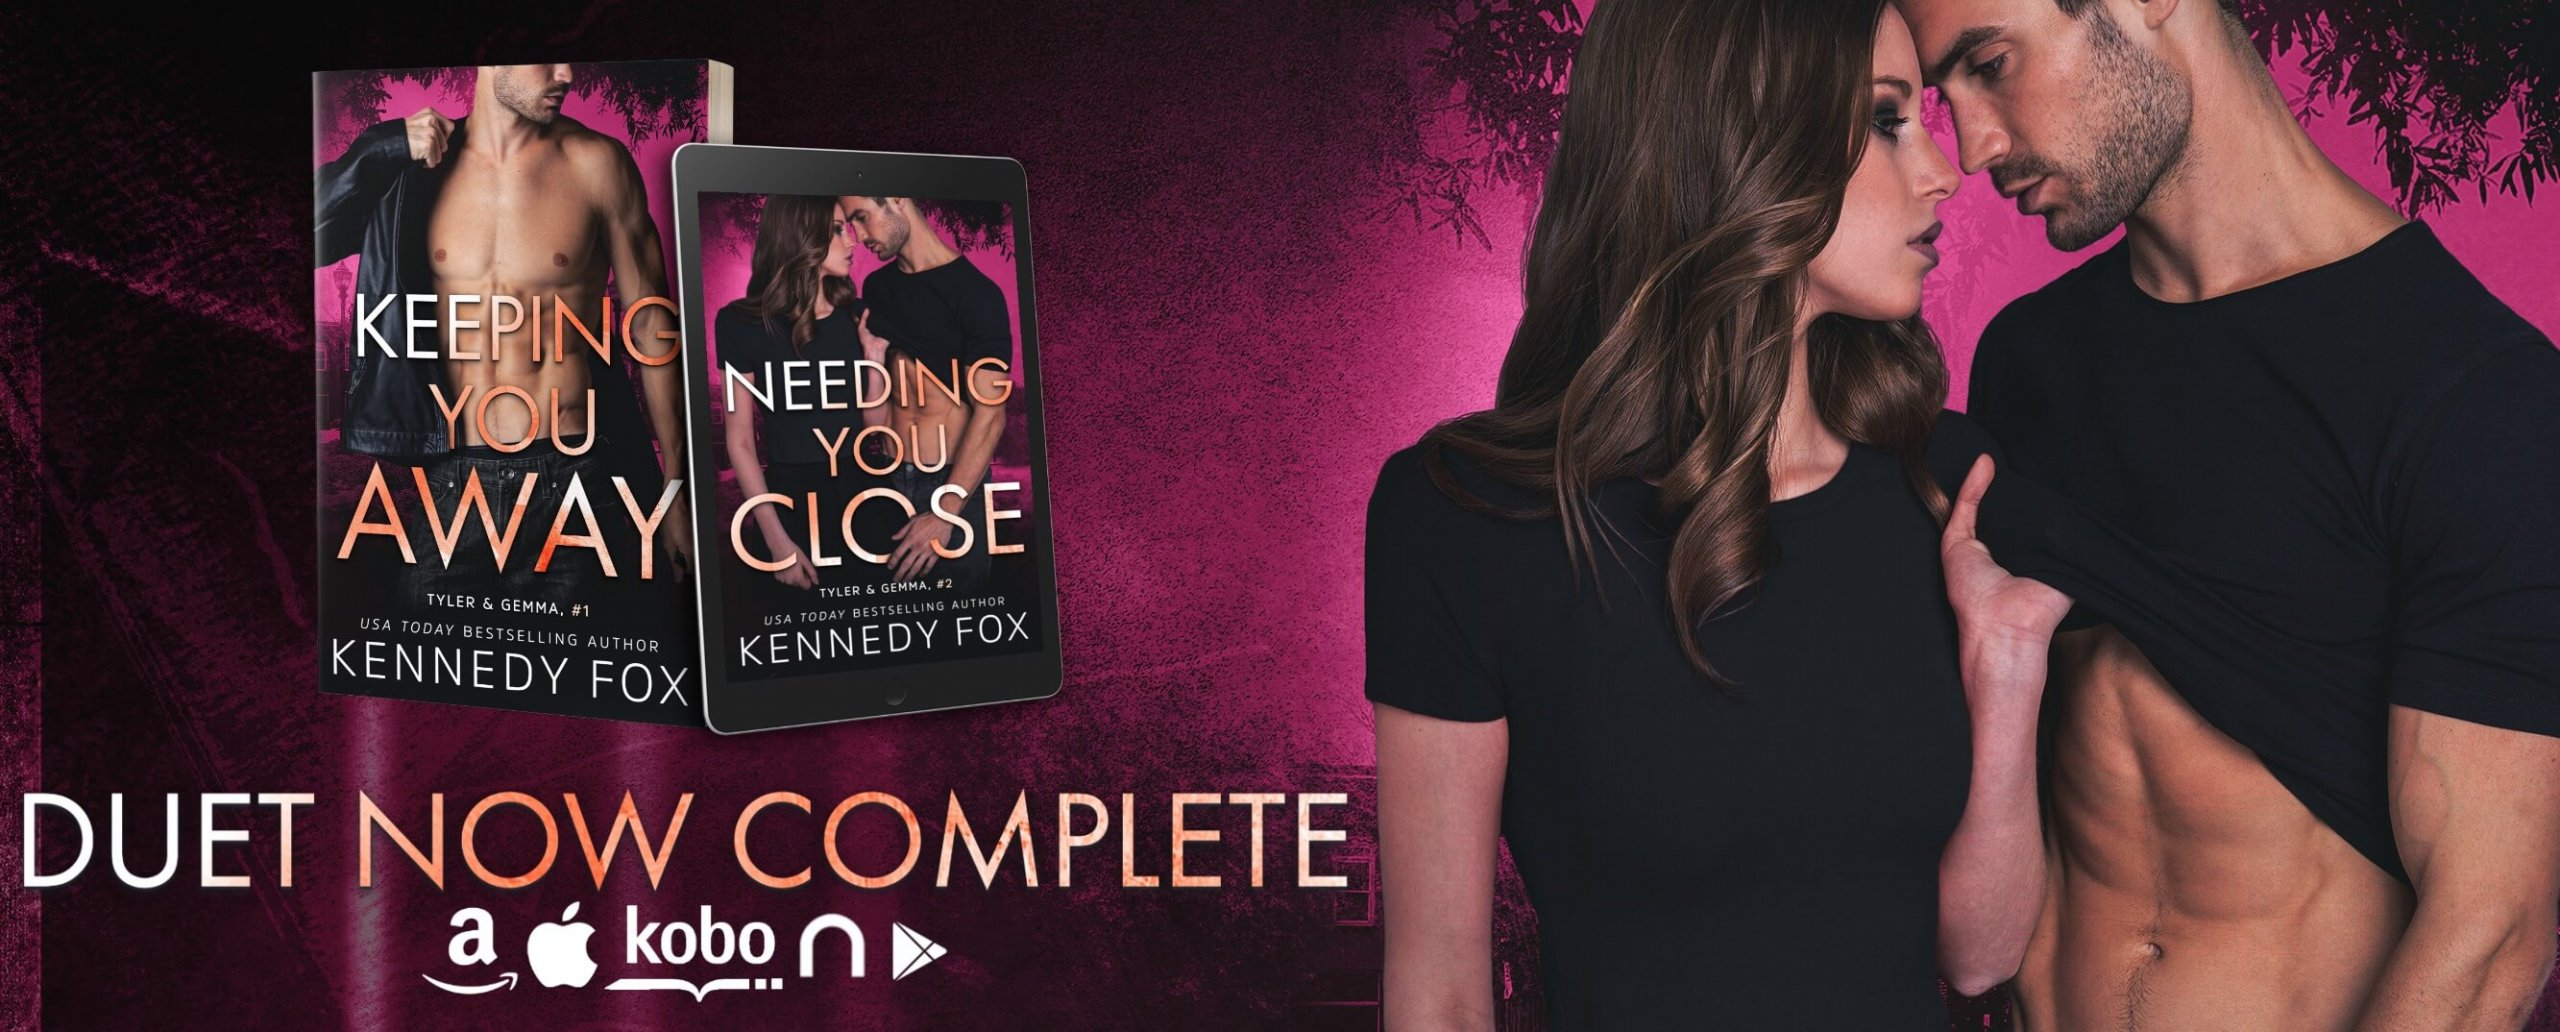 E-galley Review:  Needing You Close (Tyler & Gemma #2, Ex-Con Duet Series #2) by Kennedy Fox